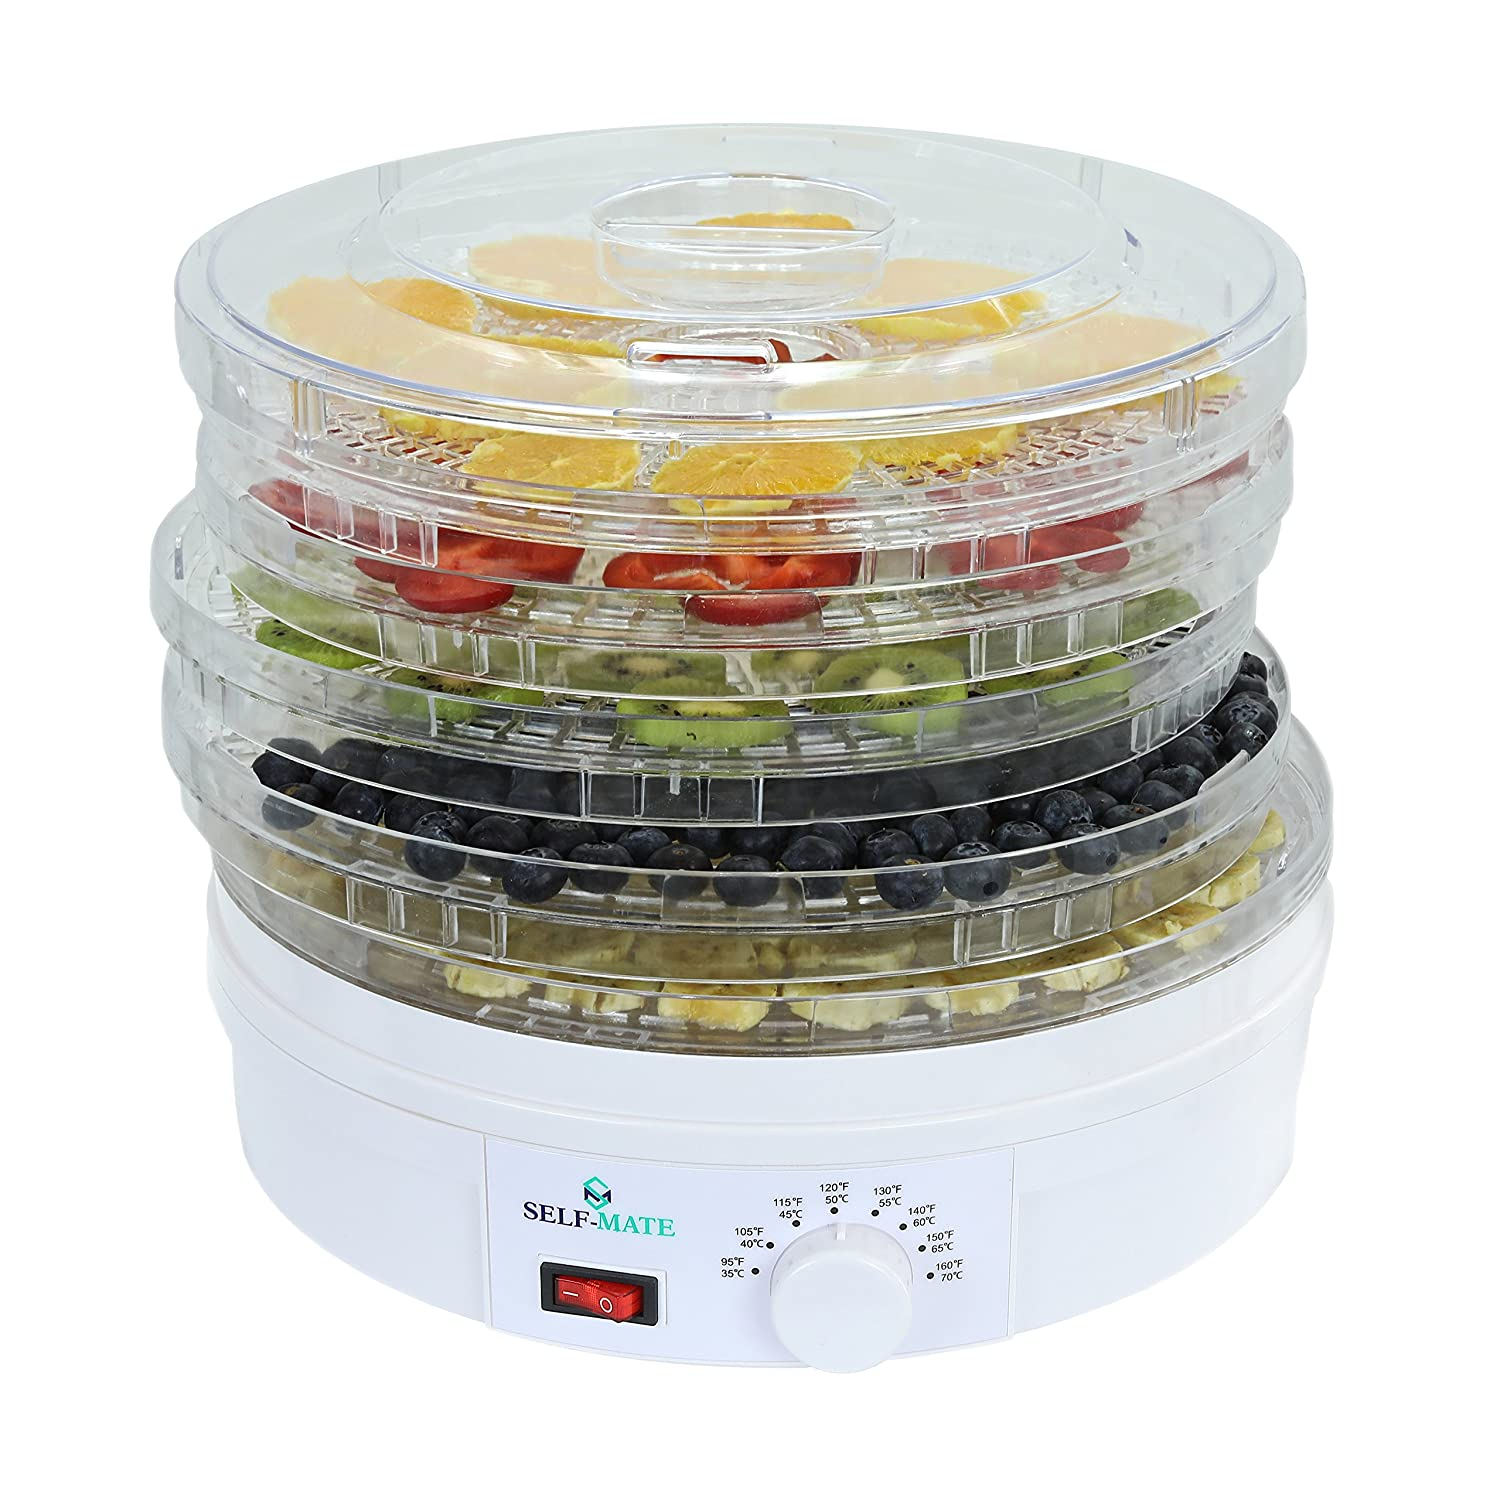 Self-Mate Countertop Premium Food Dehydrator -Stackable Trays, Adjustable Thermostat Advanced Air Flow System -Great for Healthy Snacks, Fruit, Vegetables, Meat, Fish, Jerky Maker – 245Watts ,White